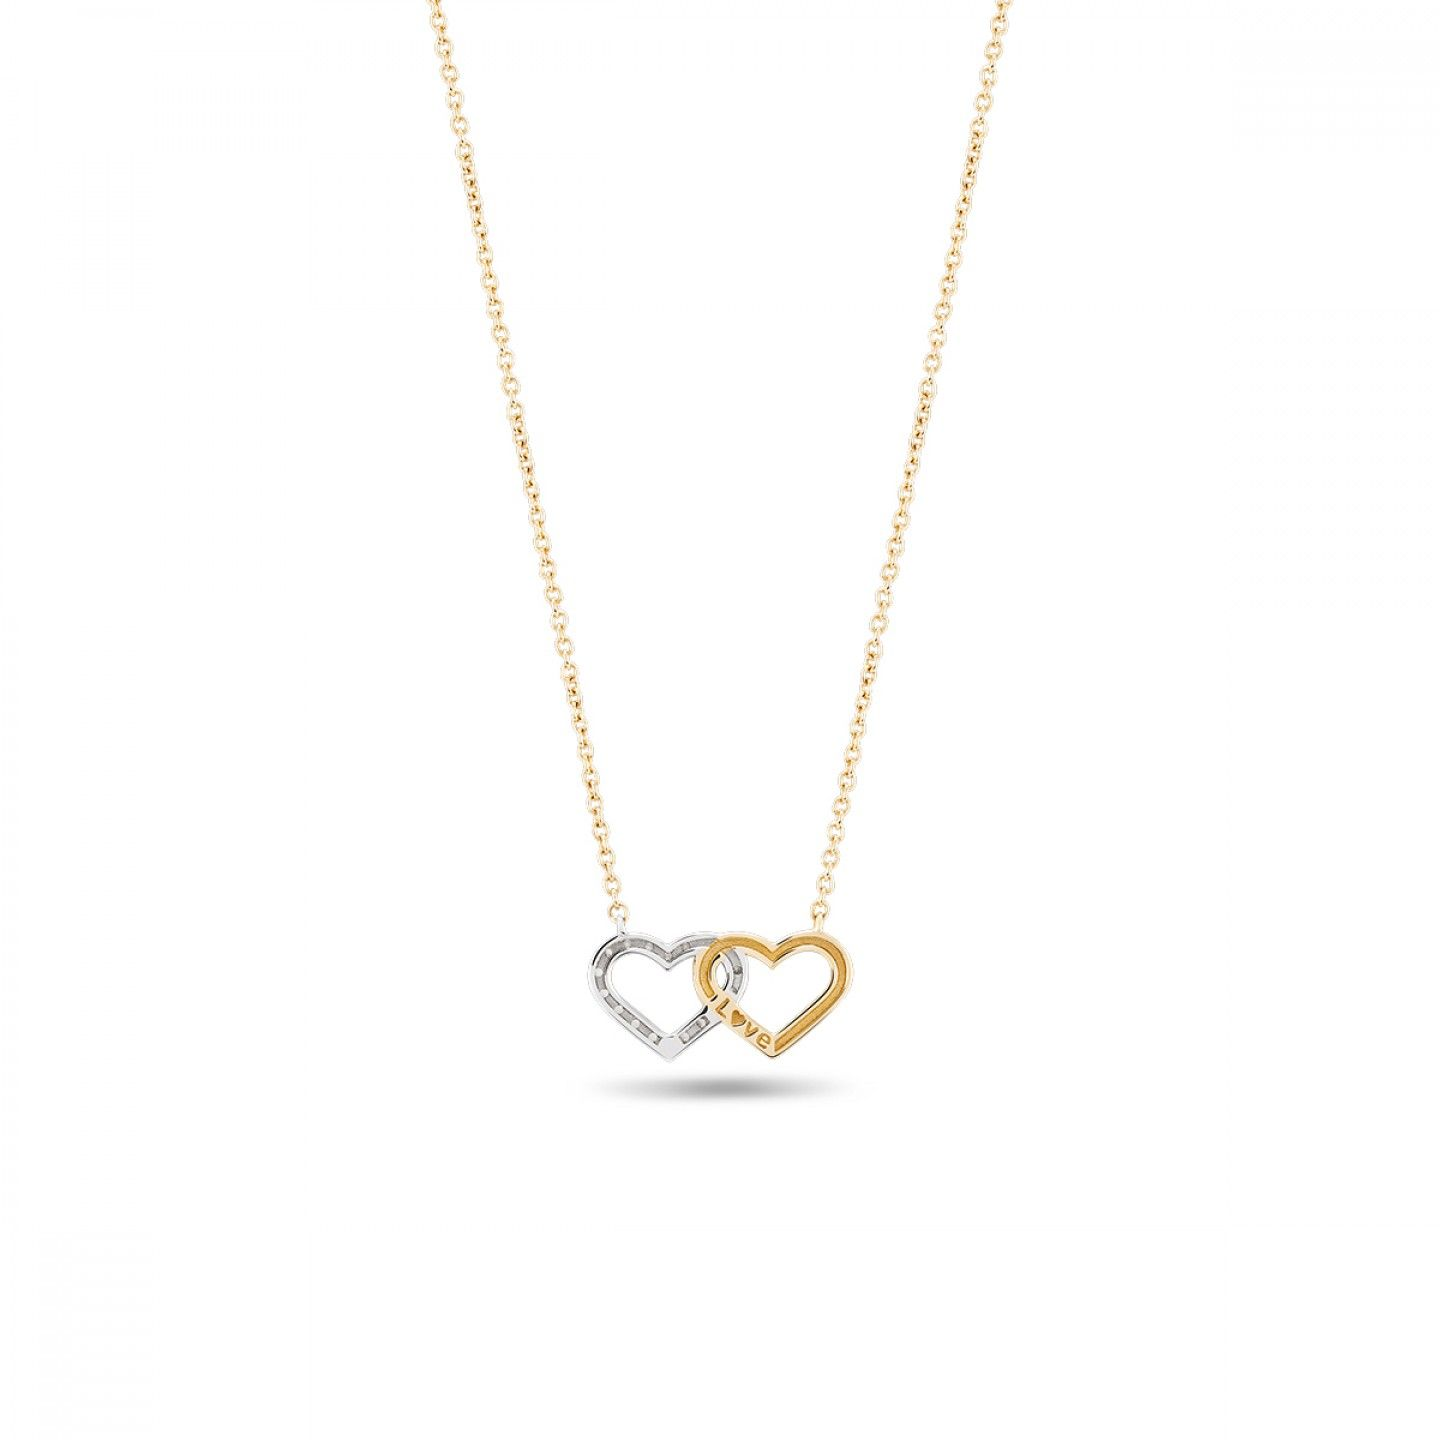 COLAR BOW GOLD TWO HEARTS II